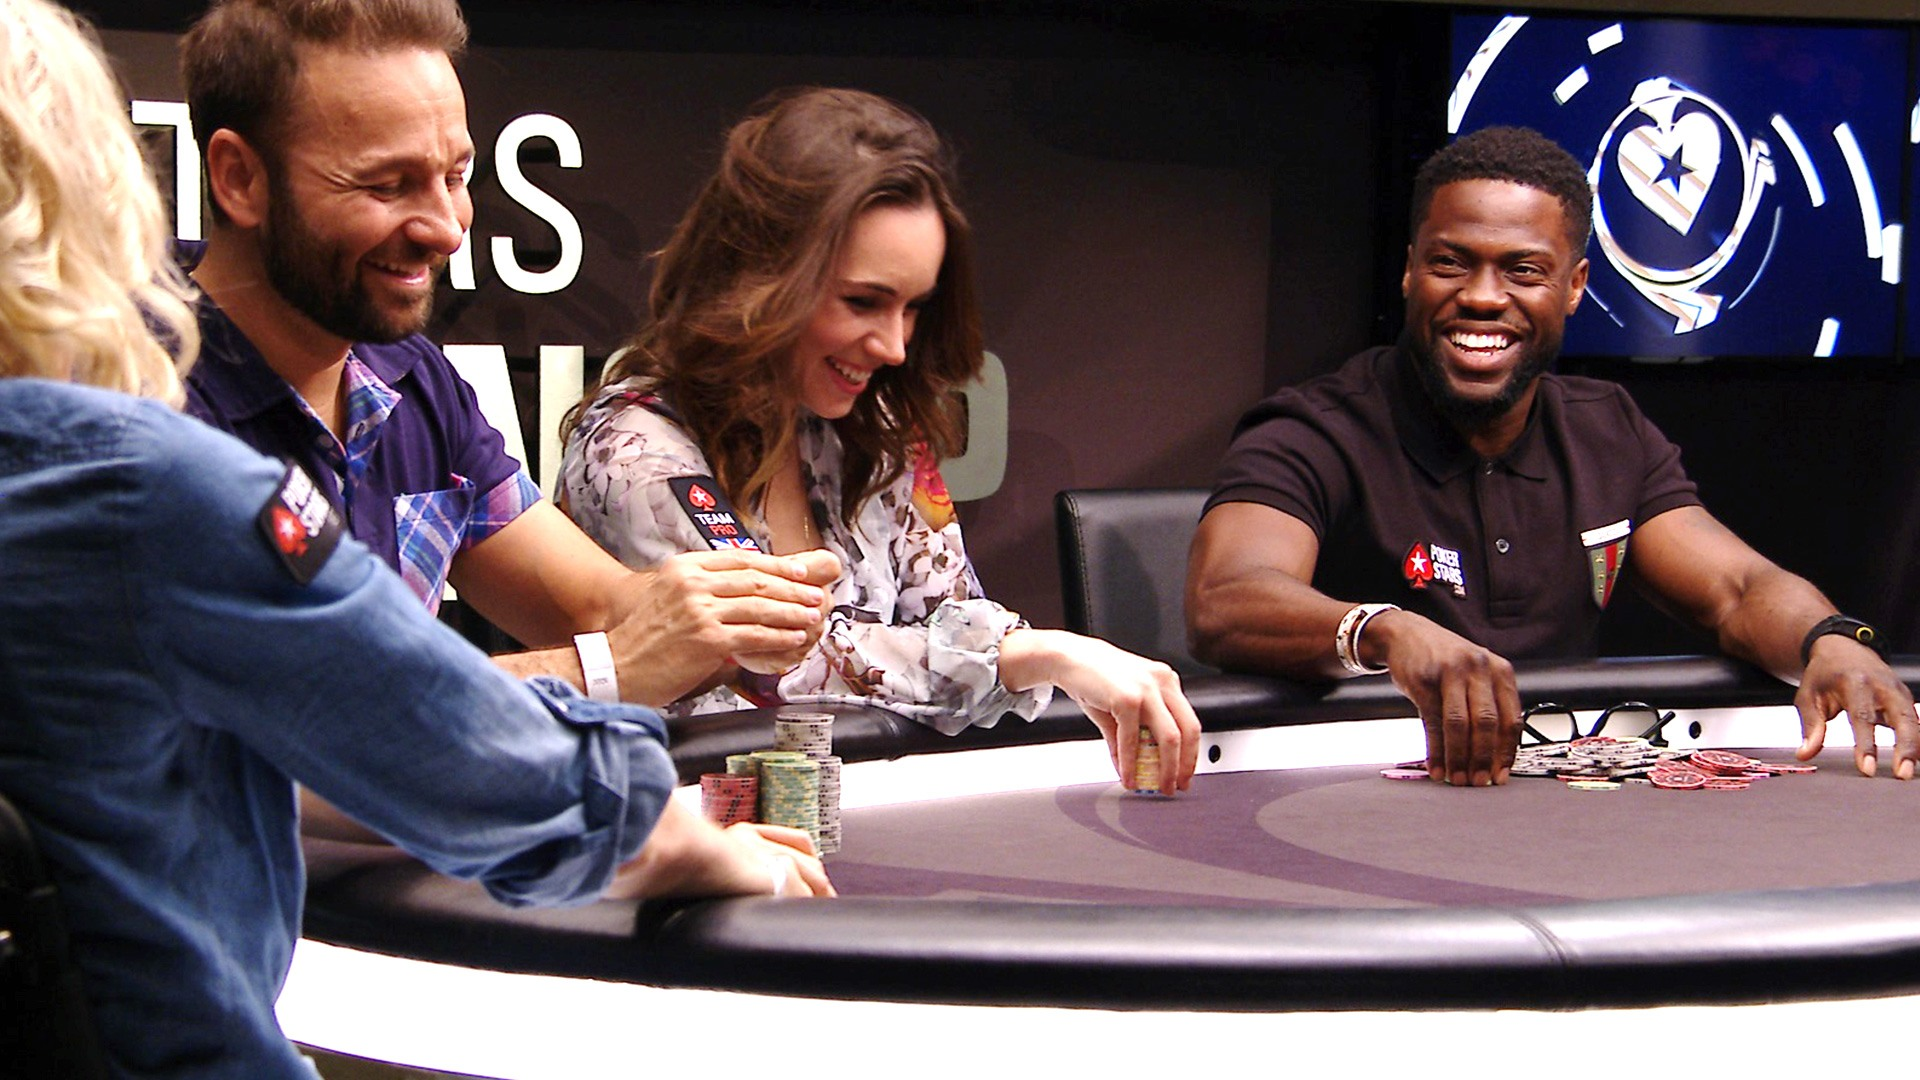 Daniel Negreanu and Liv Boeree